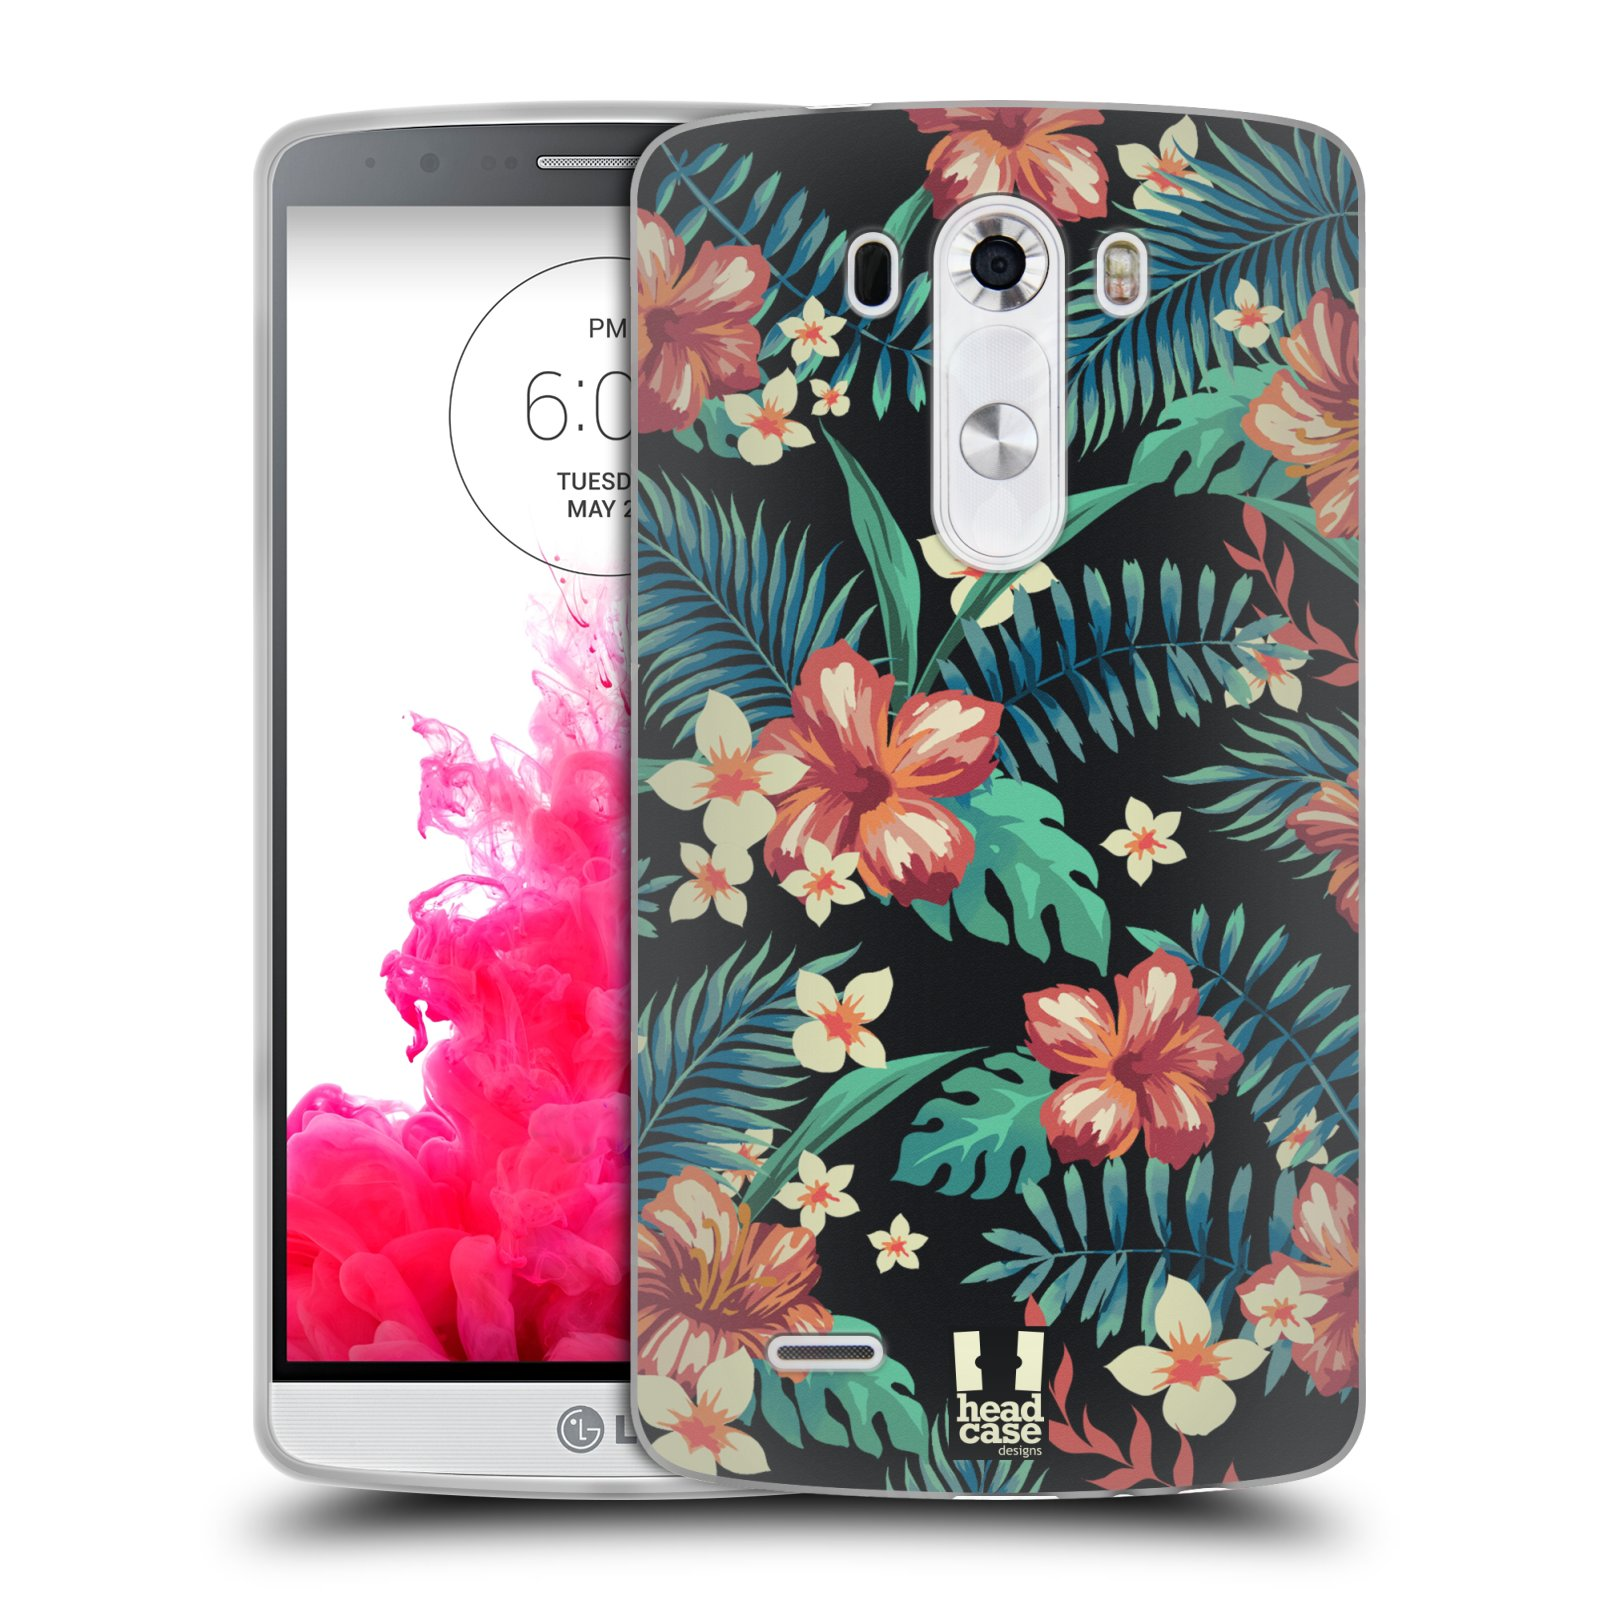 HEAD-CASE-DESIGNS-IMPRIMEES-TROPICAUX-ETUI-COQUE-EN-GEL-POUR-LG-TELEPHONES-1